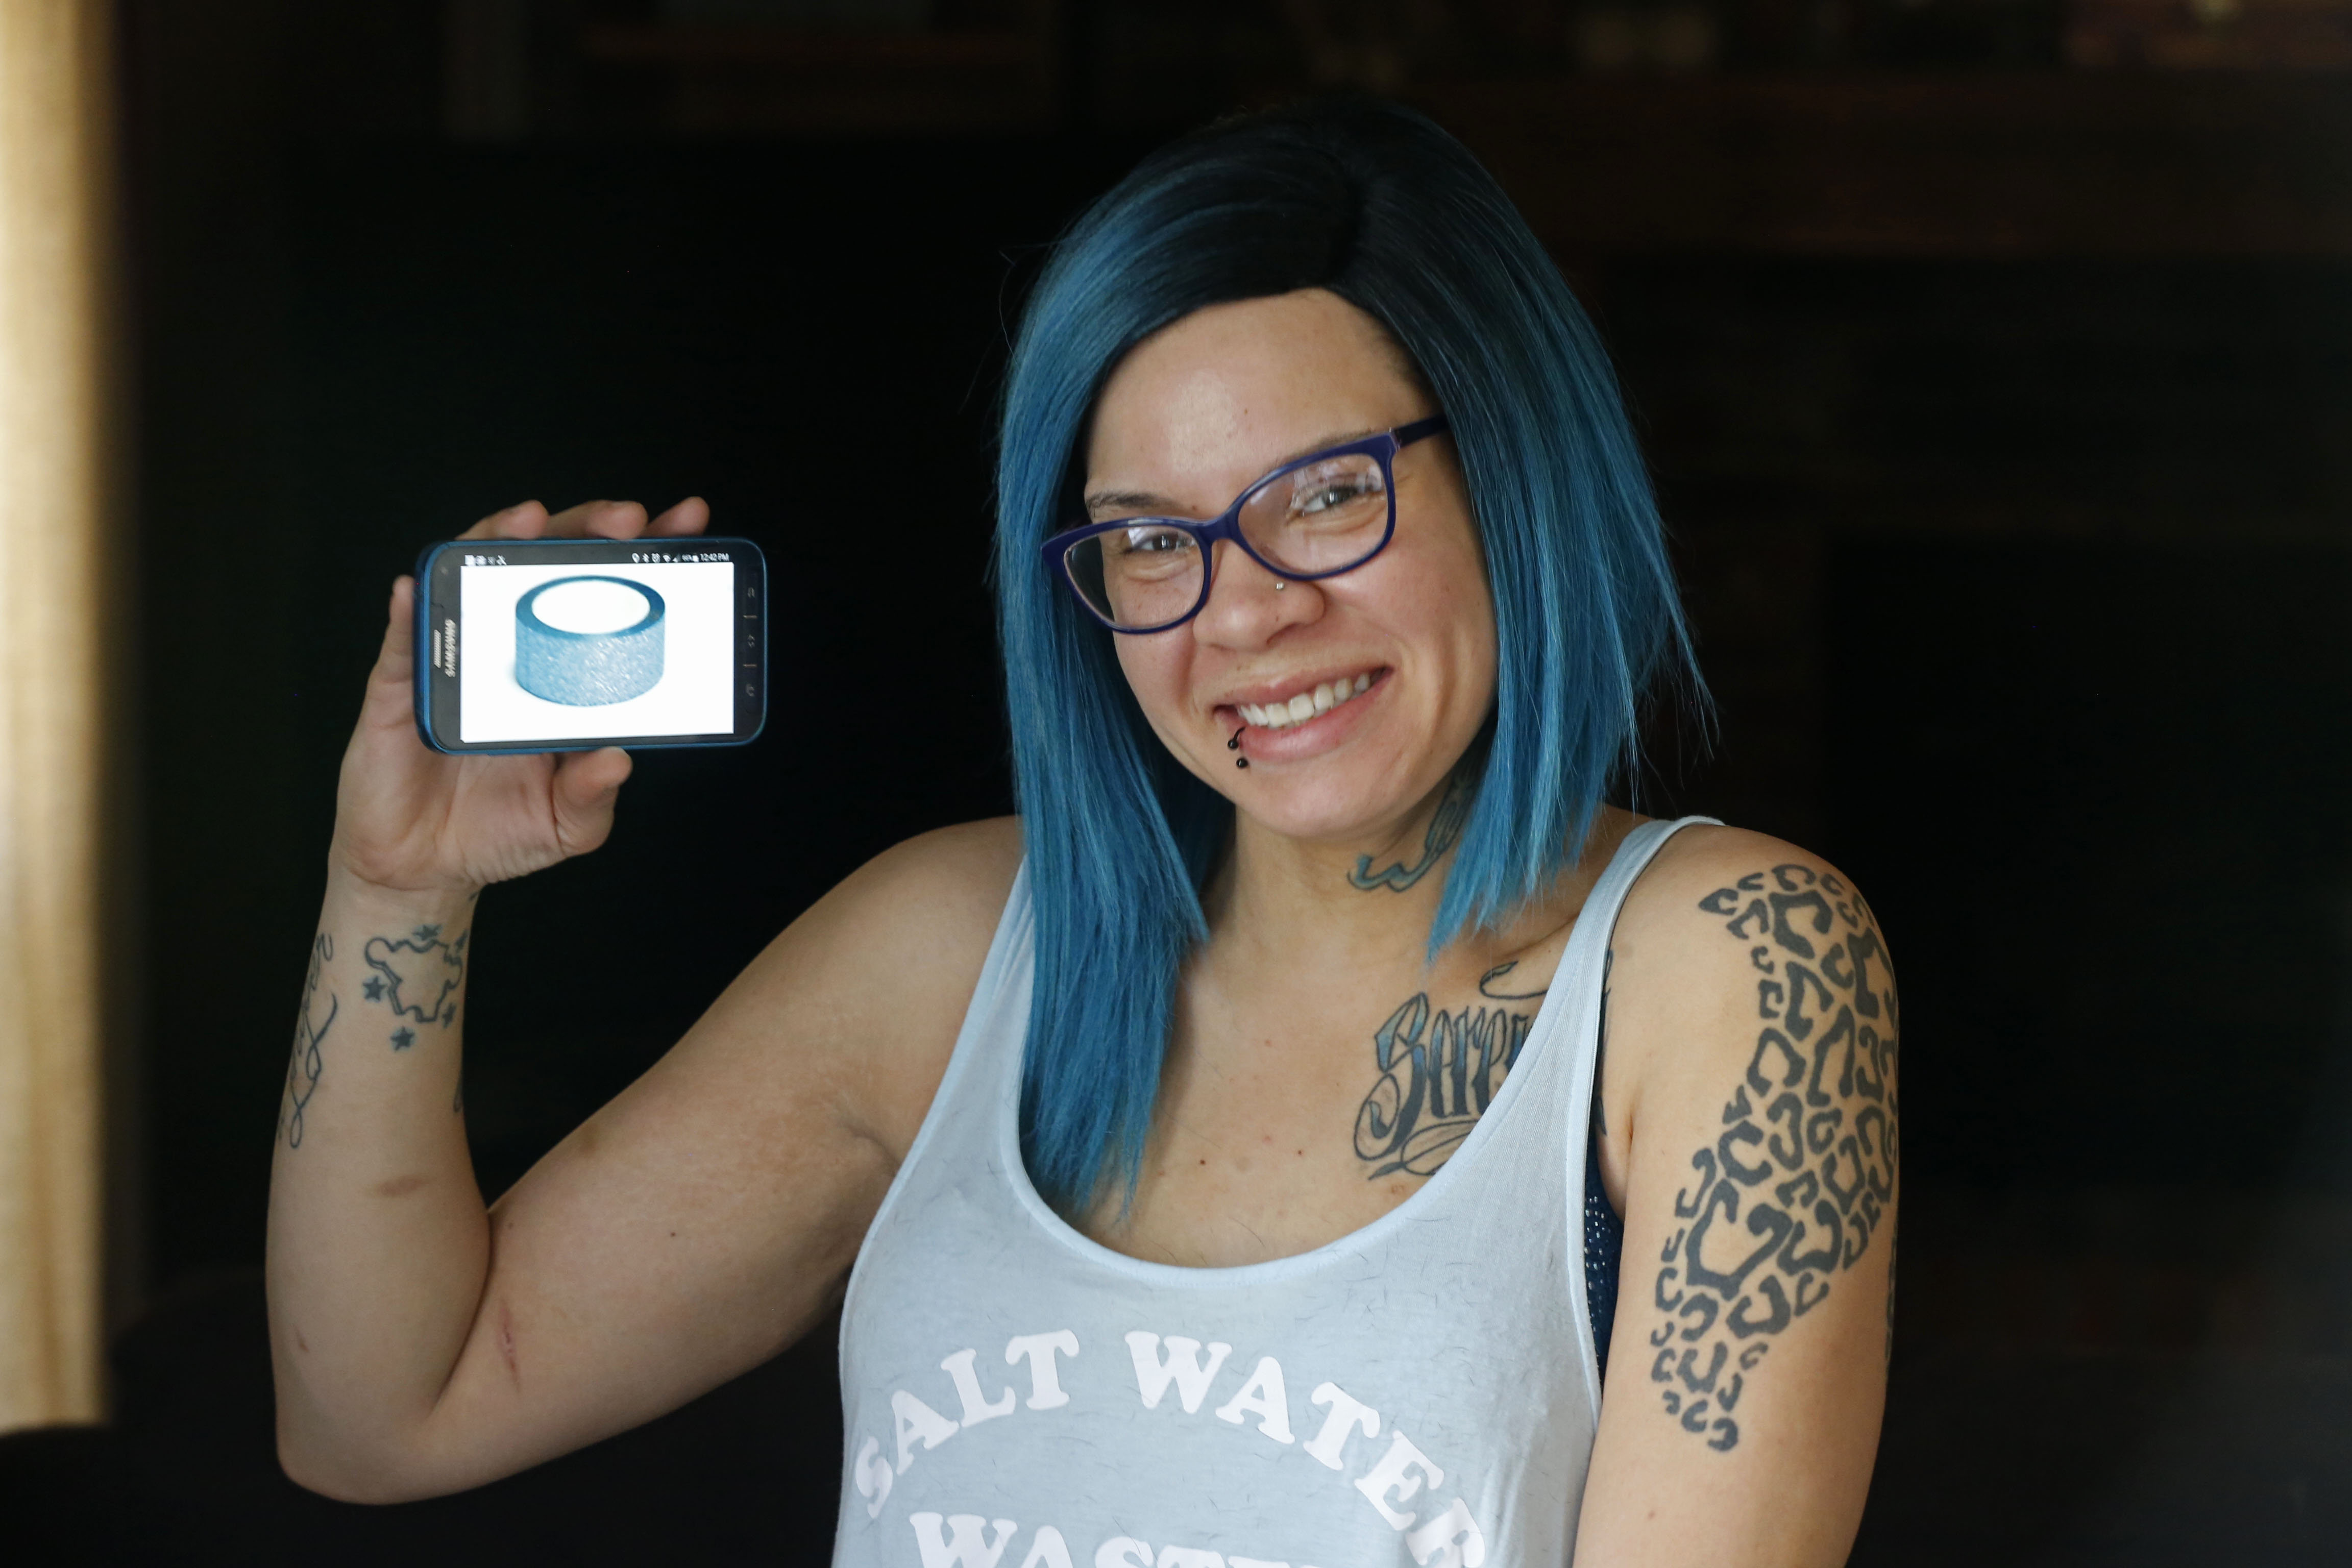 Brittany Brown, age 28, of East Amherst. A baker, tattoo artist and former pizzeria owner. Brown still shops in stores for things like clothing and craft supplies. (Robert Kirkham/Buffalo News)